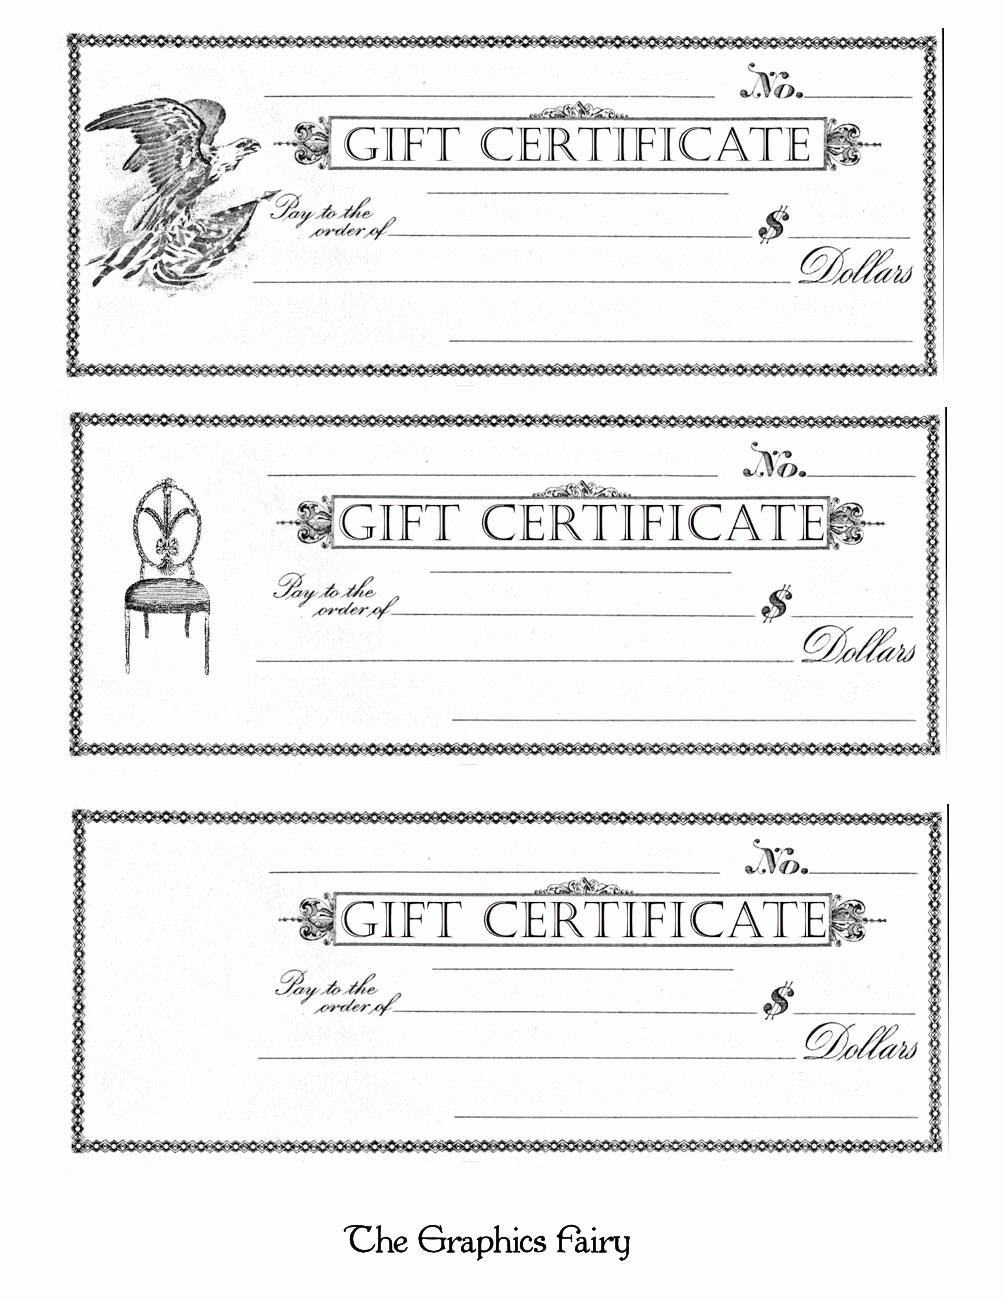 Create A Gift Certificate Free Best Of Free Printable Gift Certificates the Graphics Fairy